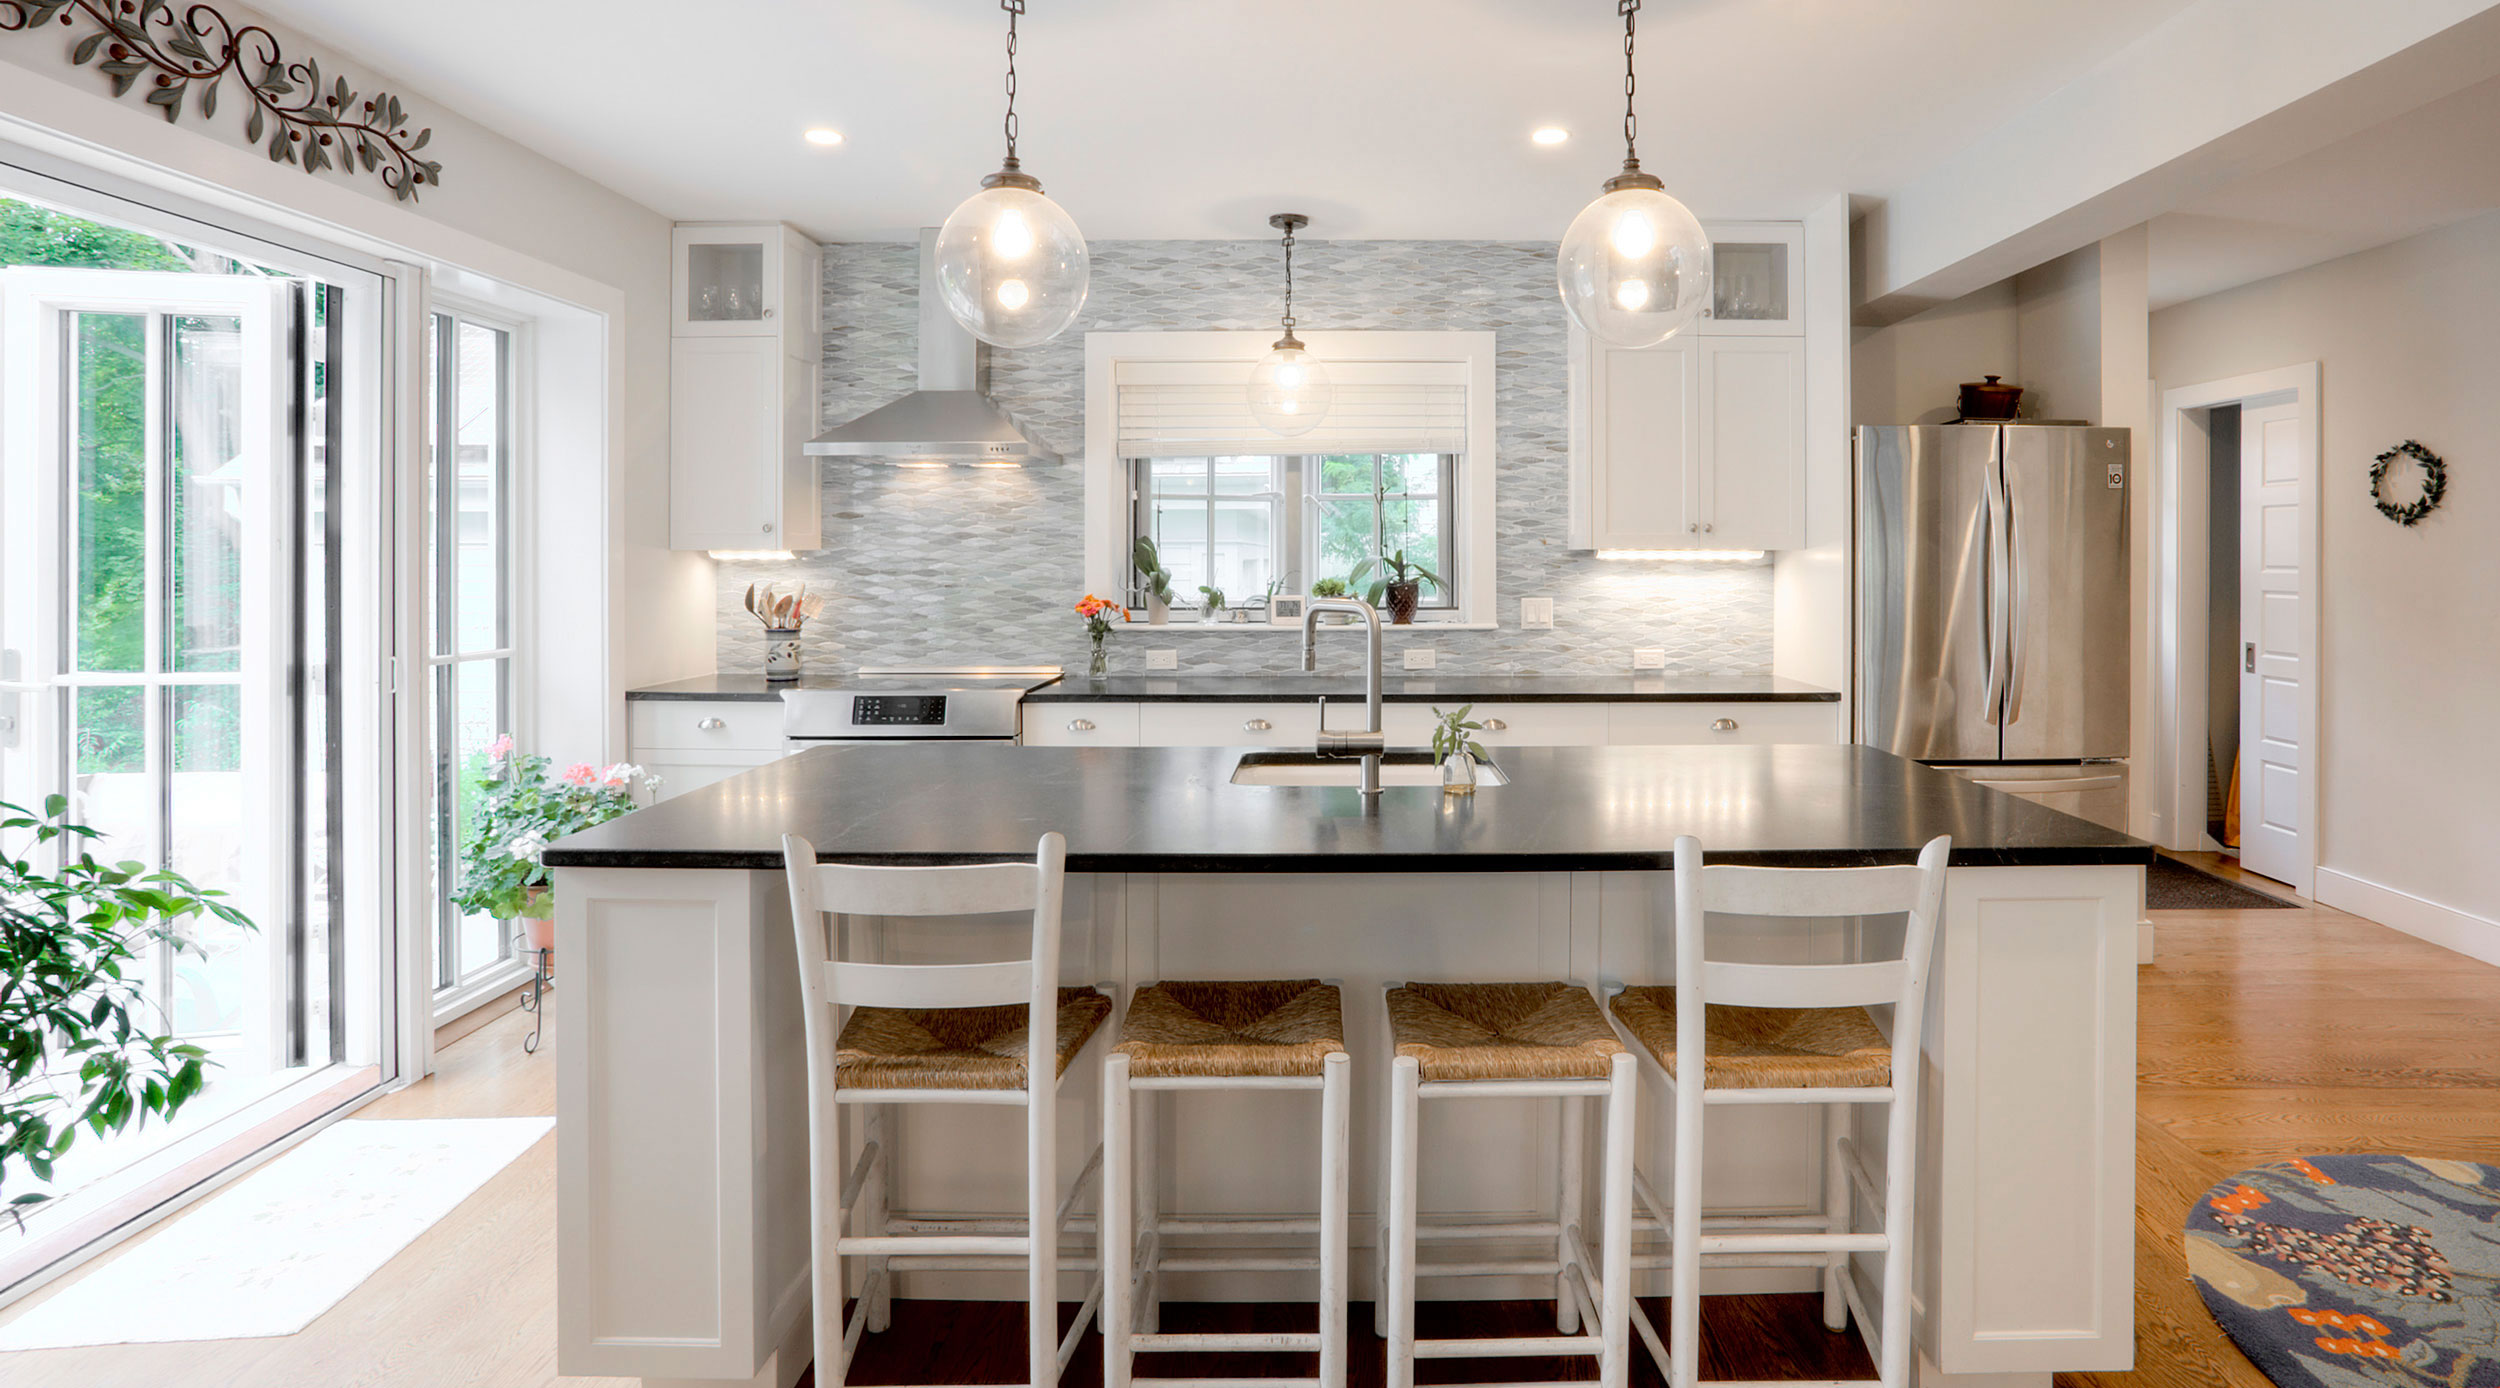 Taft_Faculty_House_kitchen-island-cropped.jpg